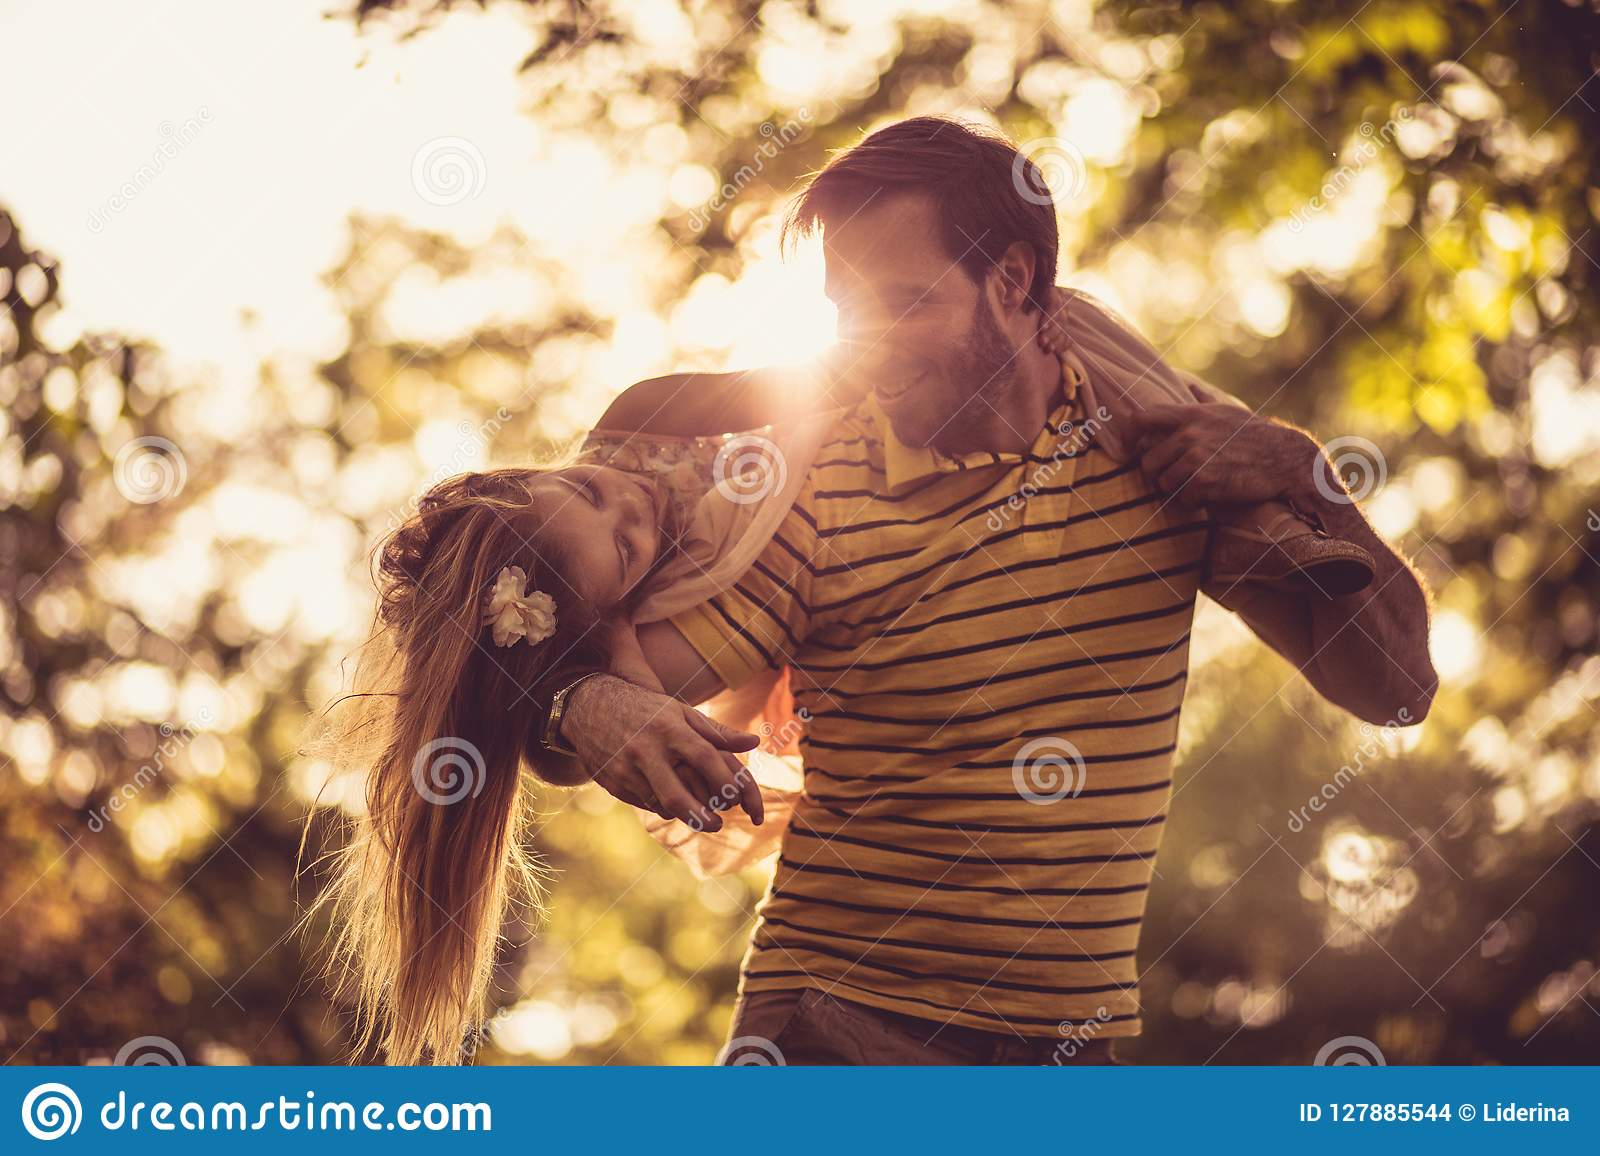 Daddy i love you stock images download 382 royalty free - I love you daddy download ...